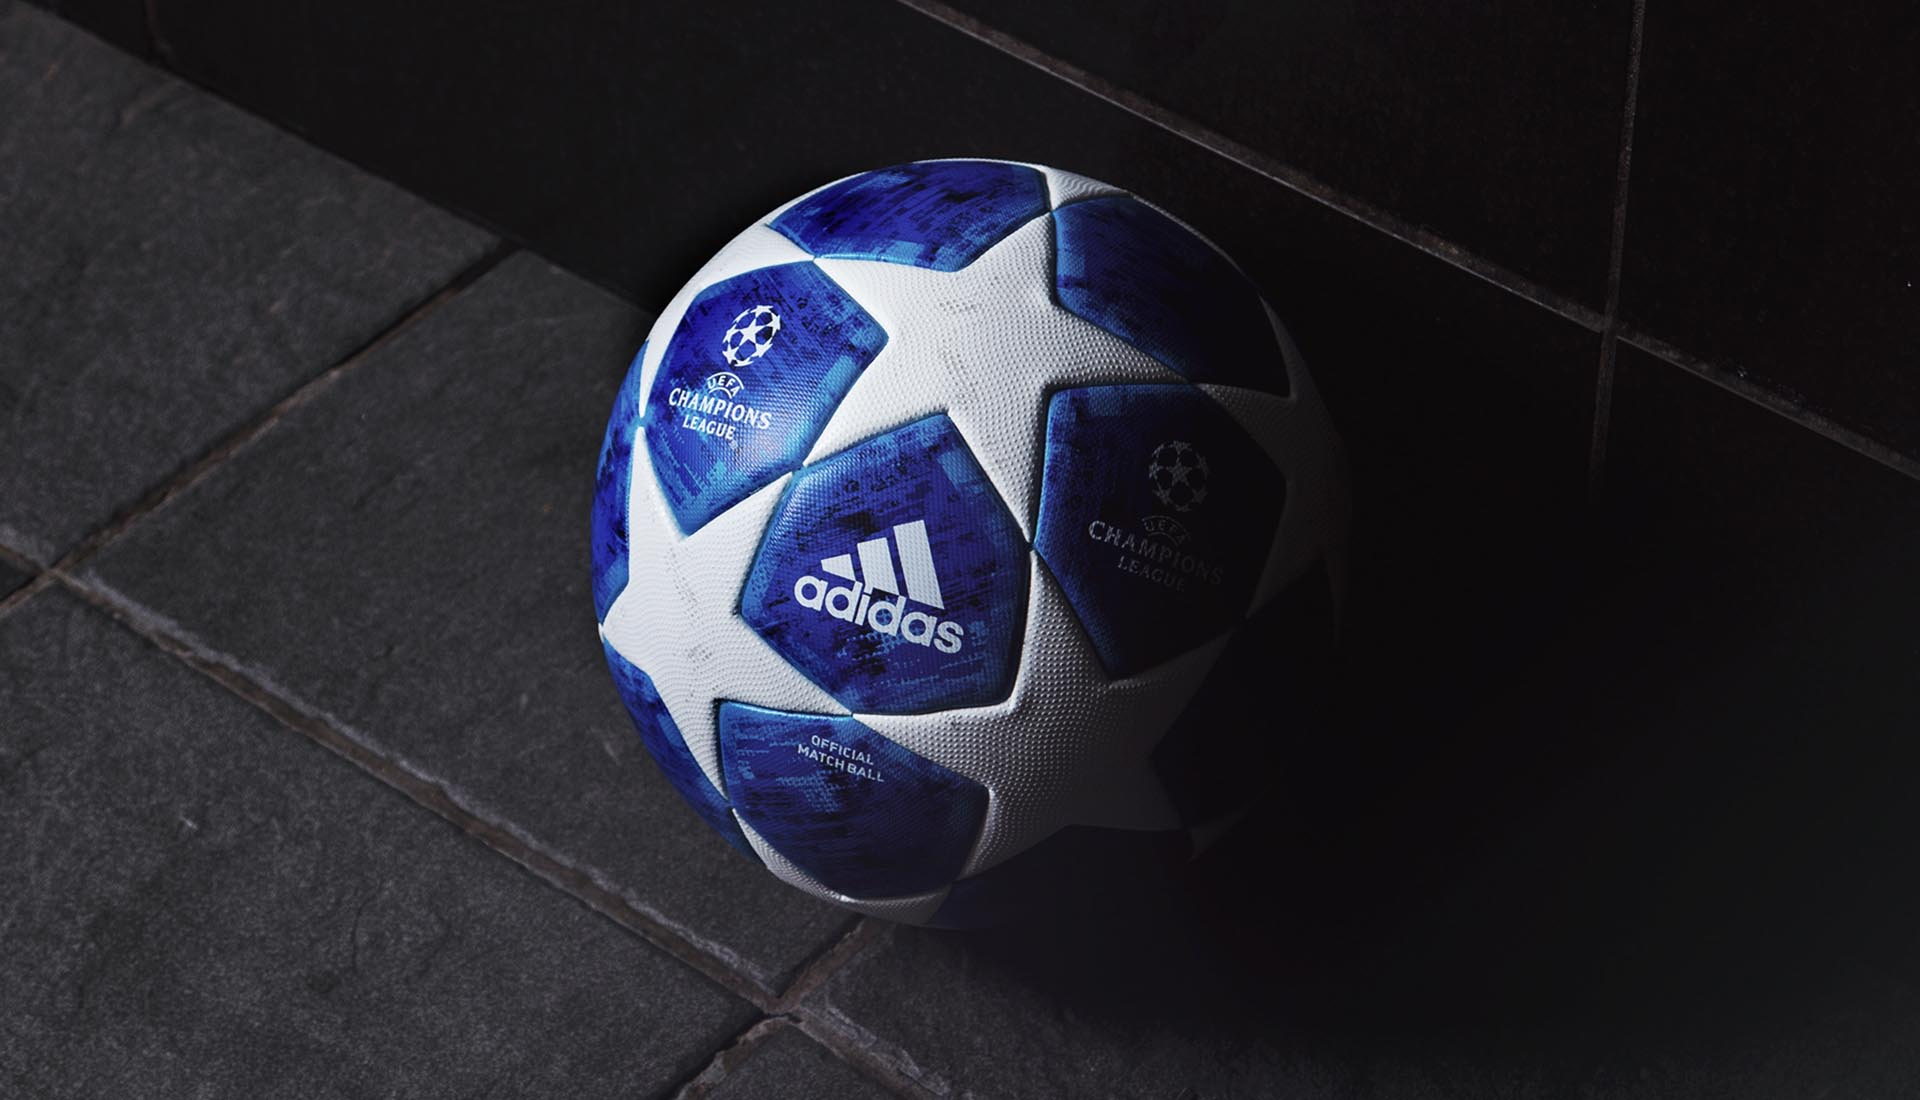 7252e169b adidas Release The 2018/19 Champions League Official Match Ball ...